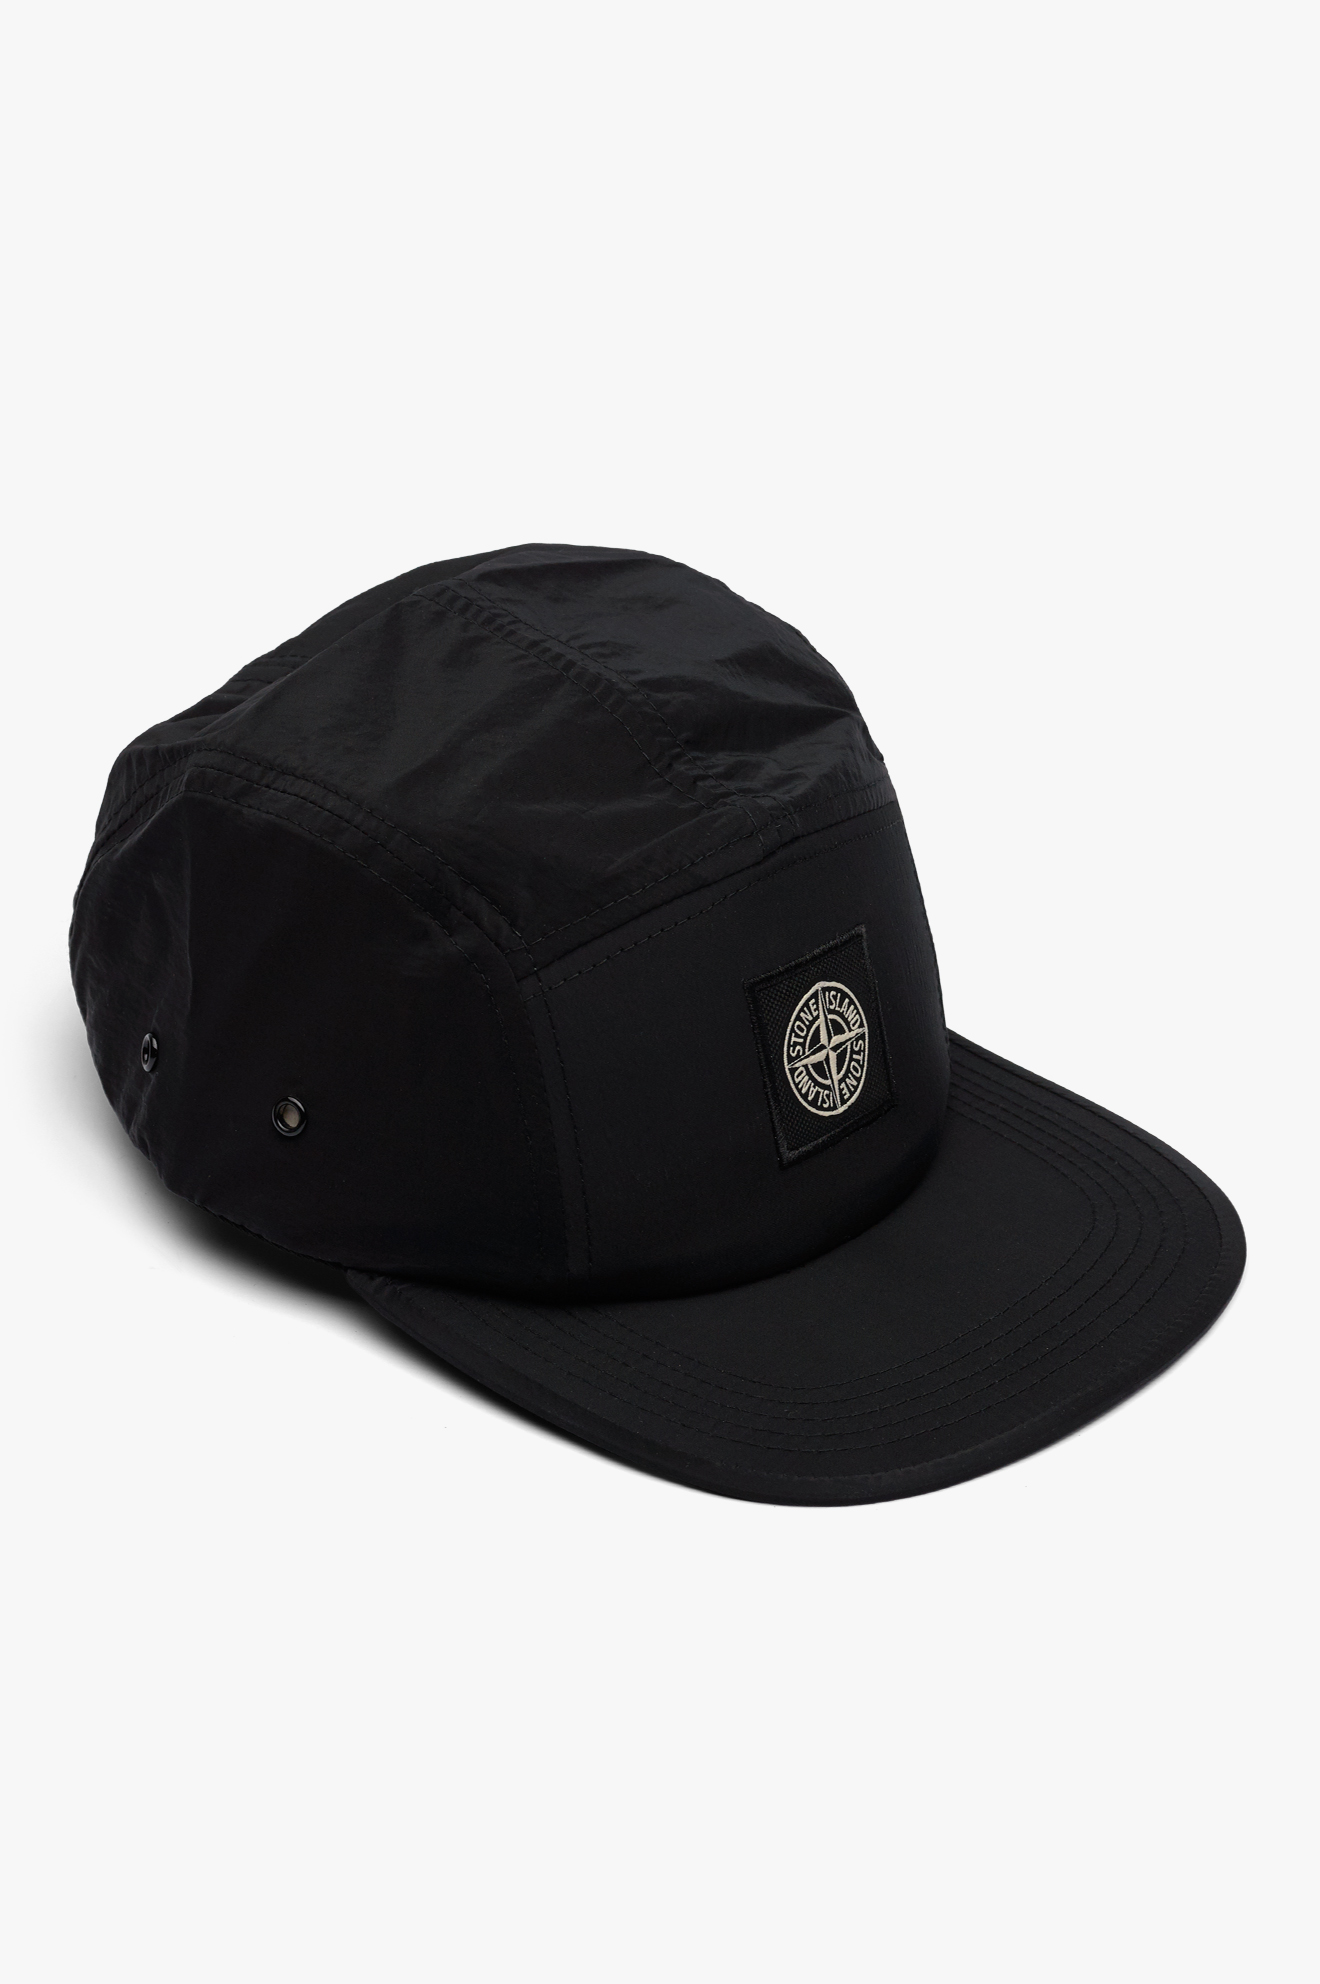 5 Pannel Nylon Metal Cap Black